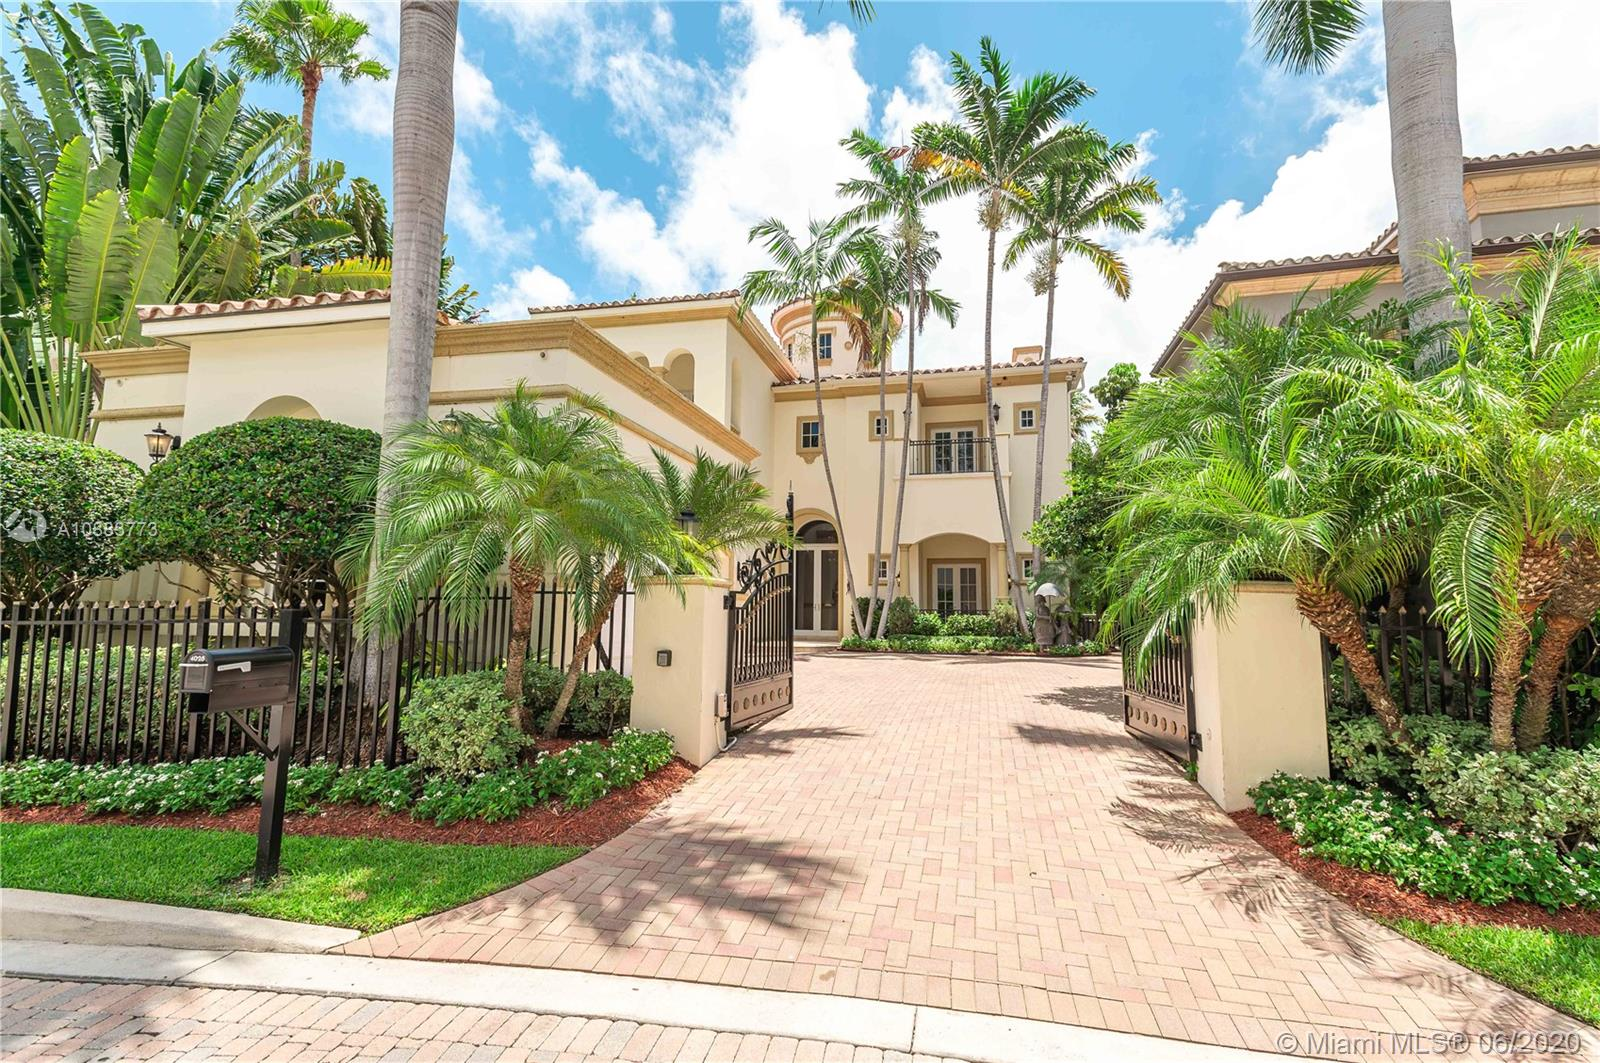 Island Estates is a private grd gated Island in Aventura's most exclusive address w only 22 homes & 12 yacht slips.  This modern Mediterranean mansion has 6 BRS and 6 .5 BA. 6200+ SqFt of beauty that includes an assigned 50' yacht slip! As you walk thru the grand foyer you welcome an open floor plan w/2 1st floor guest rms, formal dining rm, formal bar area, formal living rm, den, chef's eat-in kitchen w/Wolf, Miele & Sub Zero appliances, full laundry facilities & 3 car garage. You can journey up the grand staircase or take the elevator to the 2nd fl where there are 2 lg guest bedrms w/ensuite bathrms. 2nd full laundry rm & the dreamy mstr bedrm & bathrm. this open concept home is timeless w/water views from every room. Security is key & the Island has a private roaming guard.